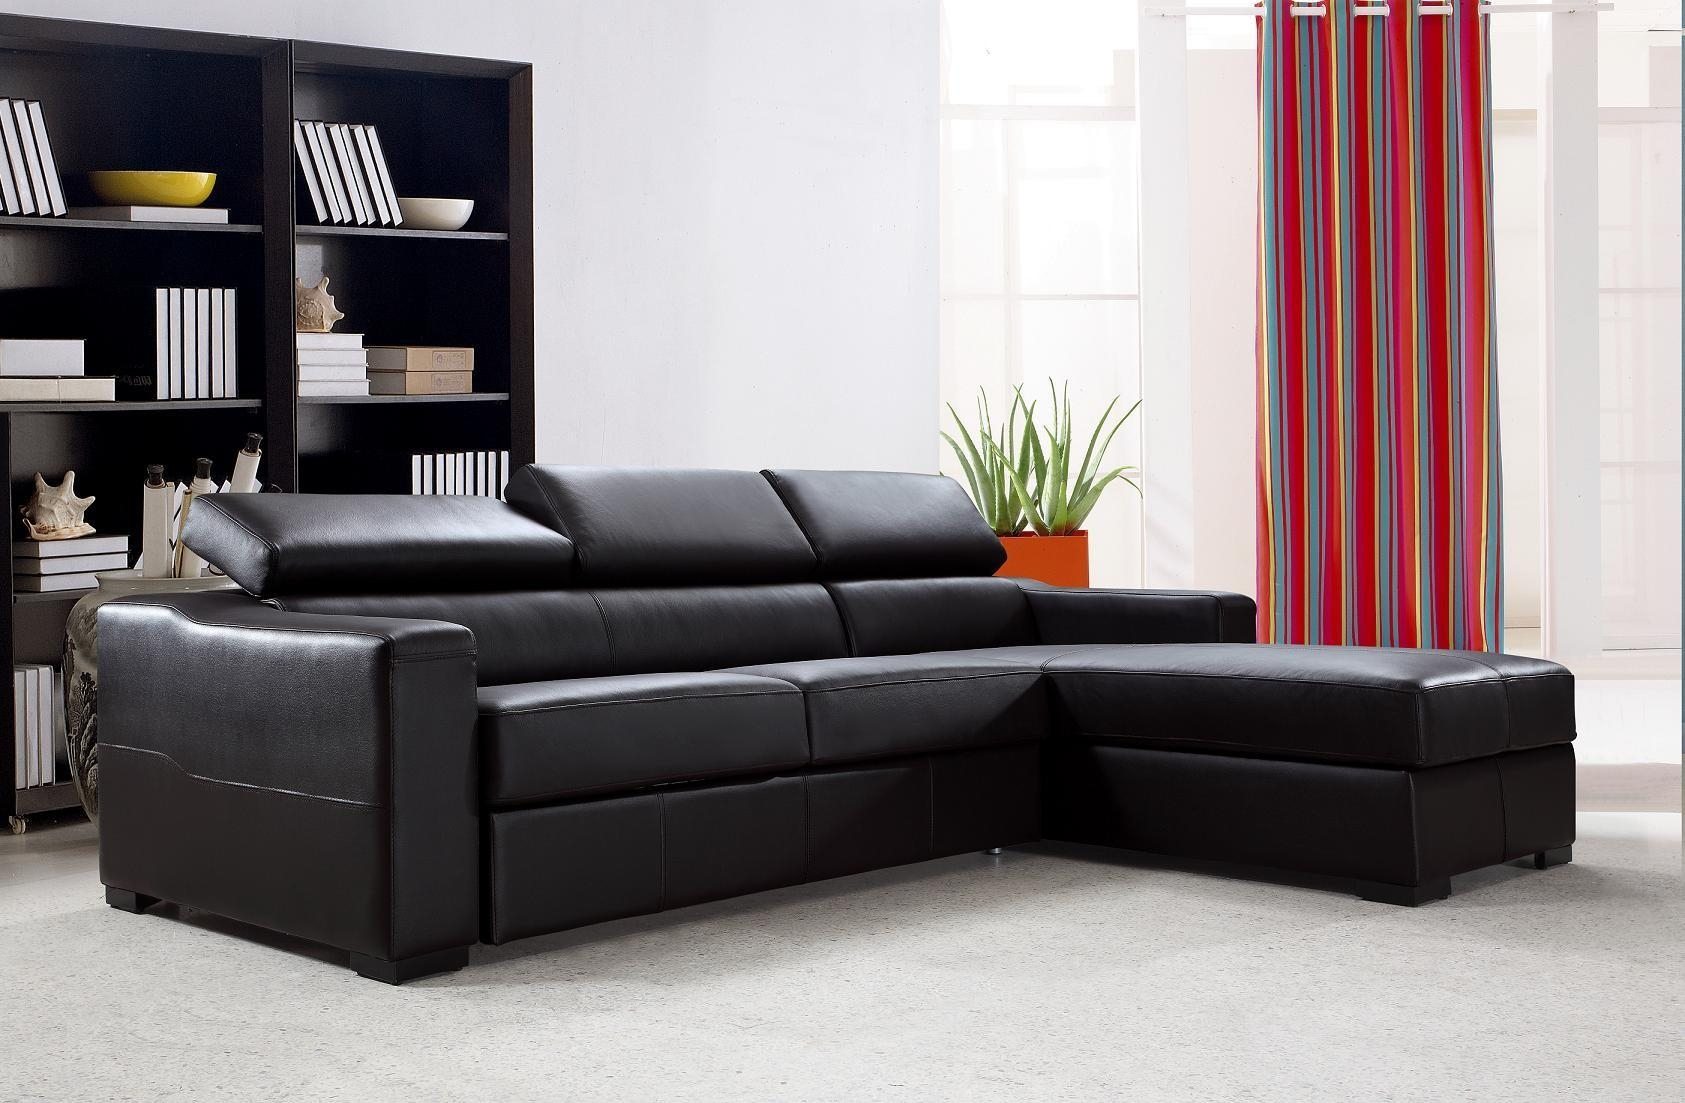 Flip Reversible Espresso Leather Sectional Sofa Bed W/ Storage Throughout Sectional Sofa Bed With Storage (View 3 of 20)